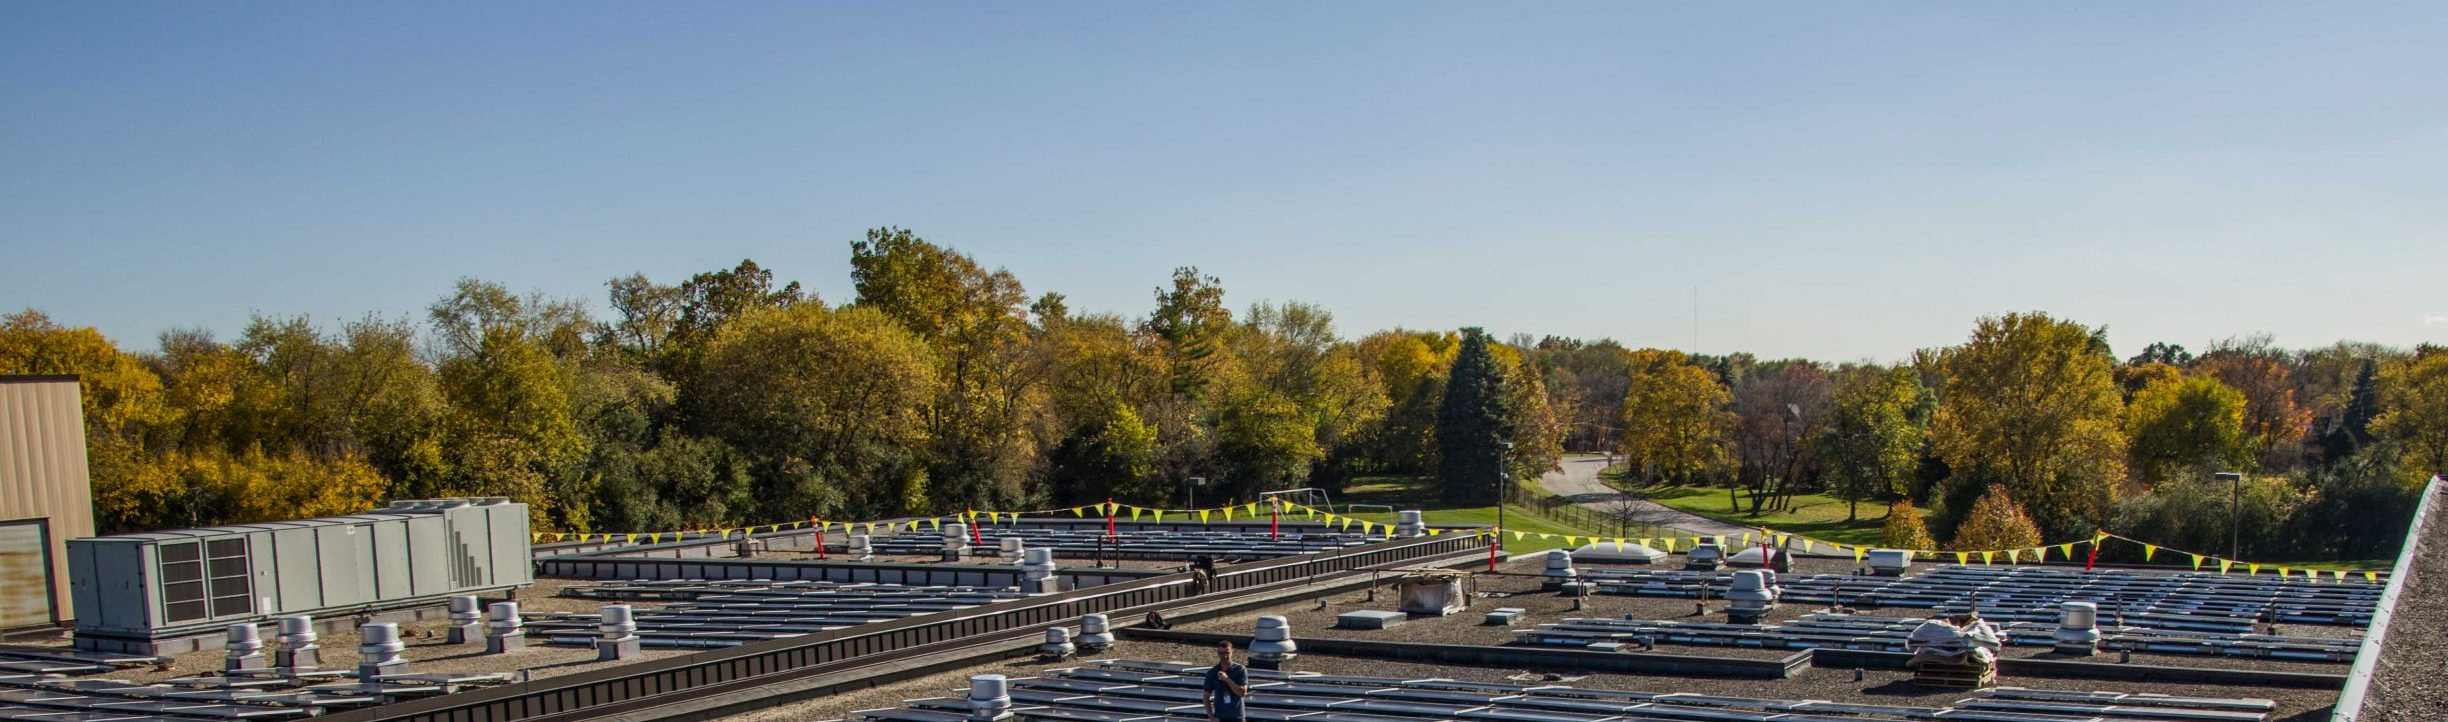 LARGEST SOLAR ARRAY ON A SCHOOL IN ILLINOIS